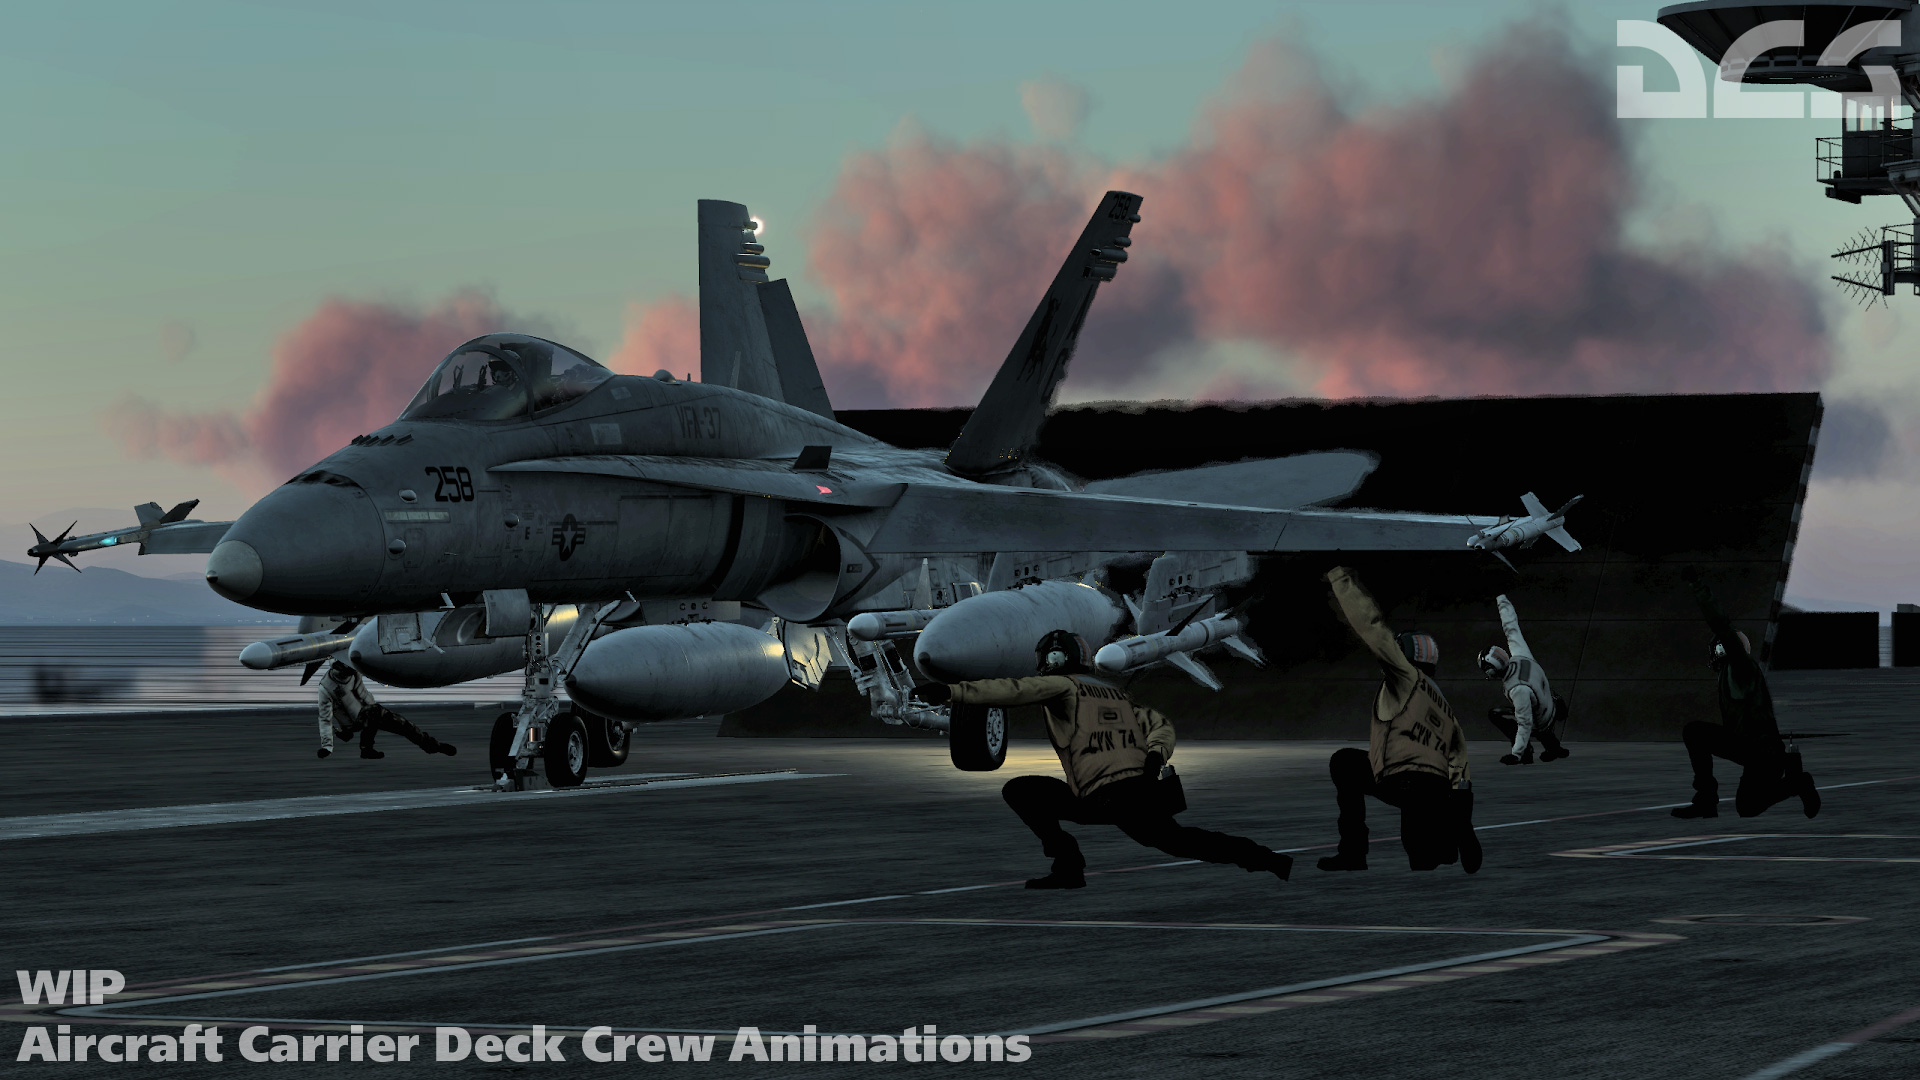 Aircraft-Carrier-Deck-Crew-Animations-03